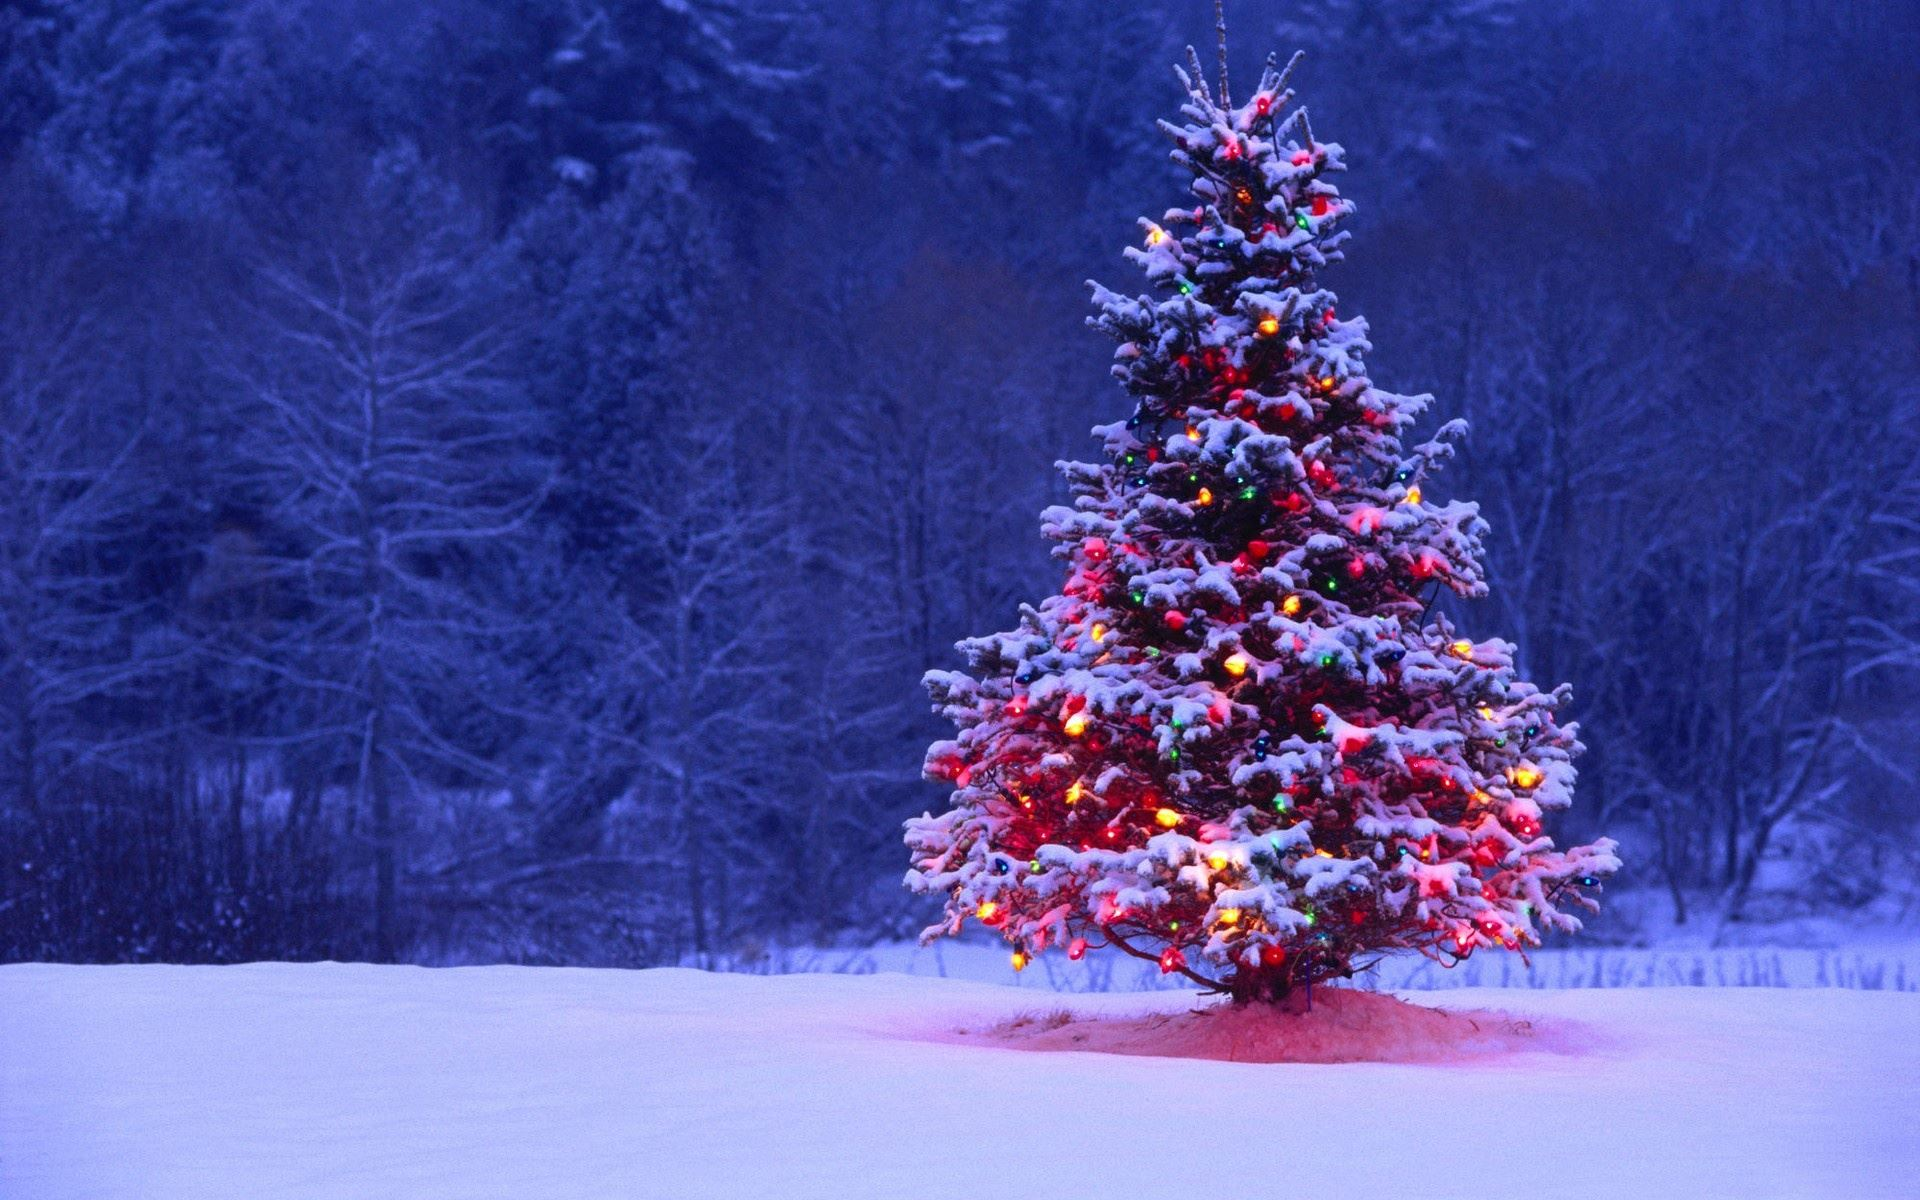 snowy-outdoor-decorated-christmas-tree